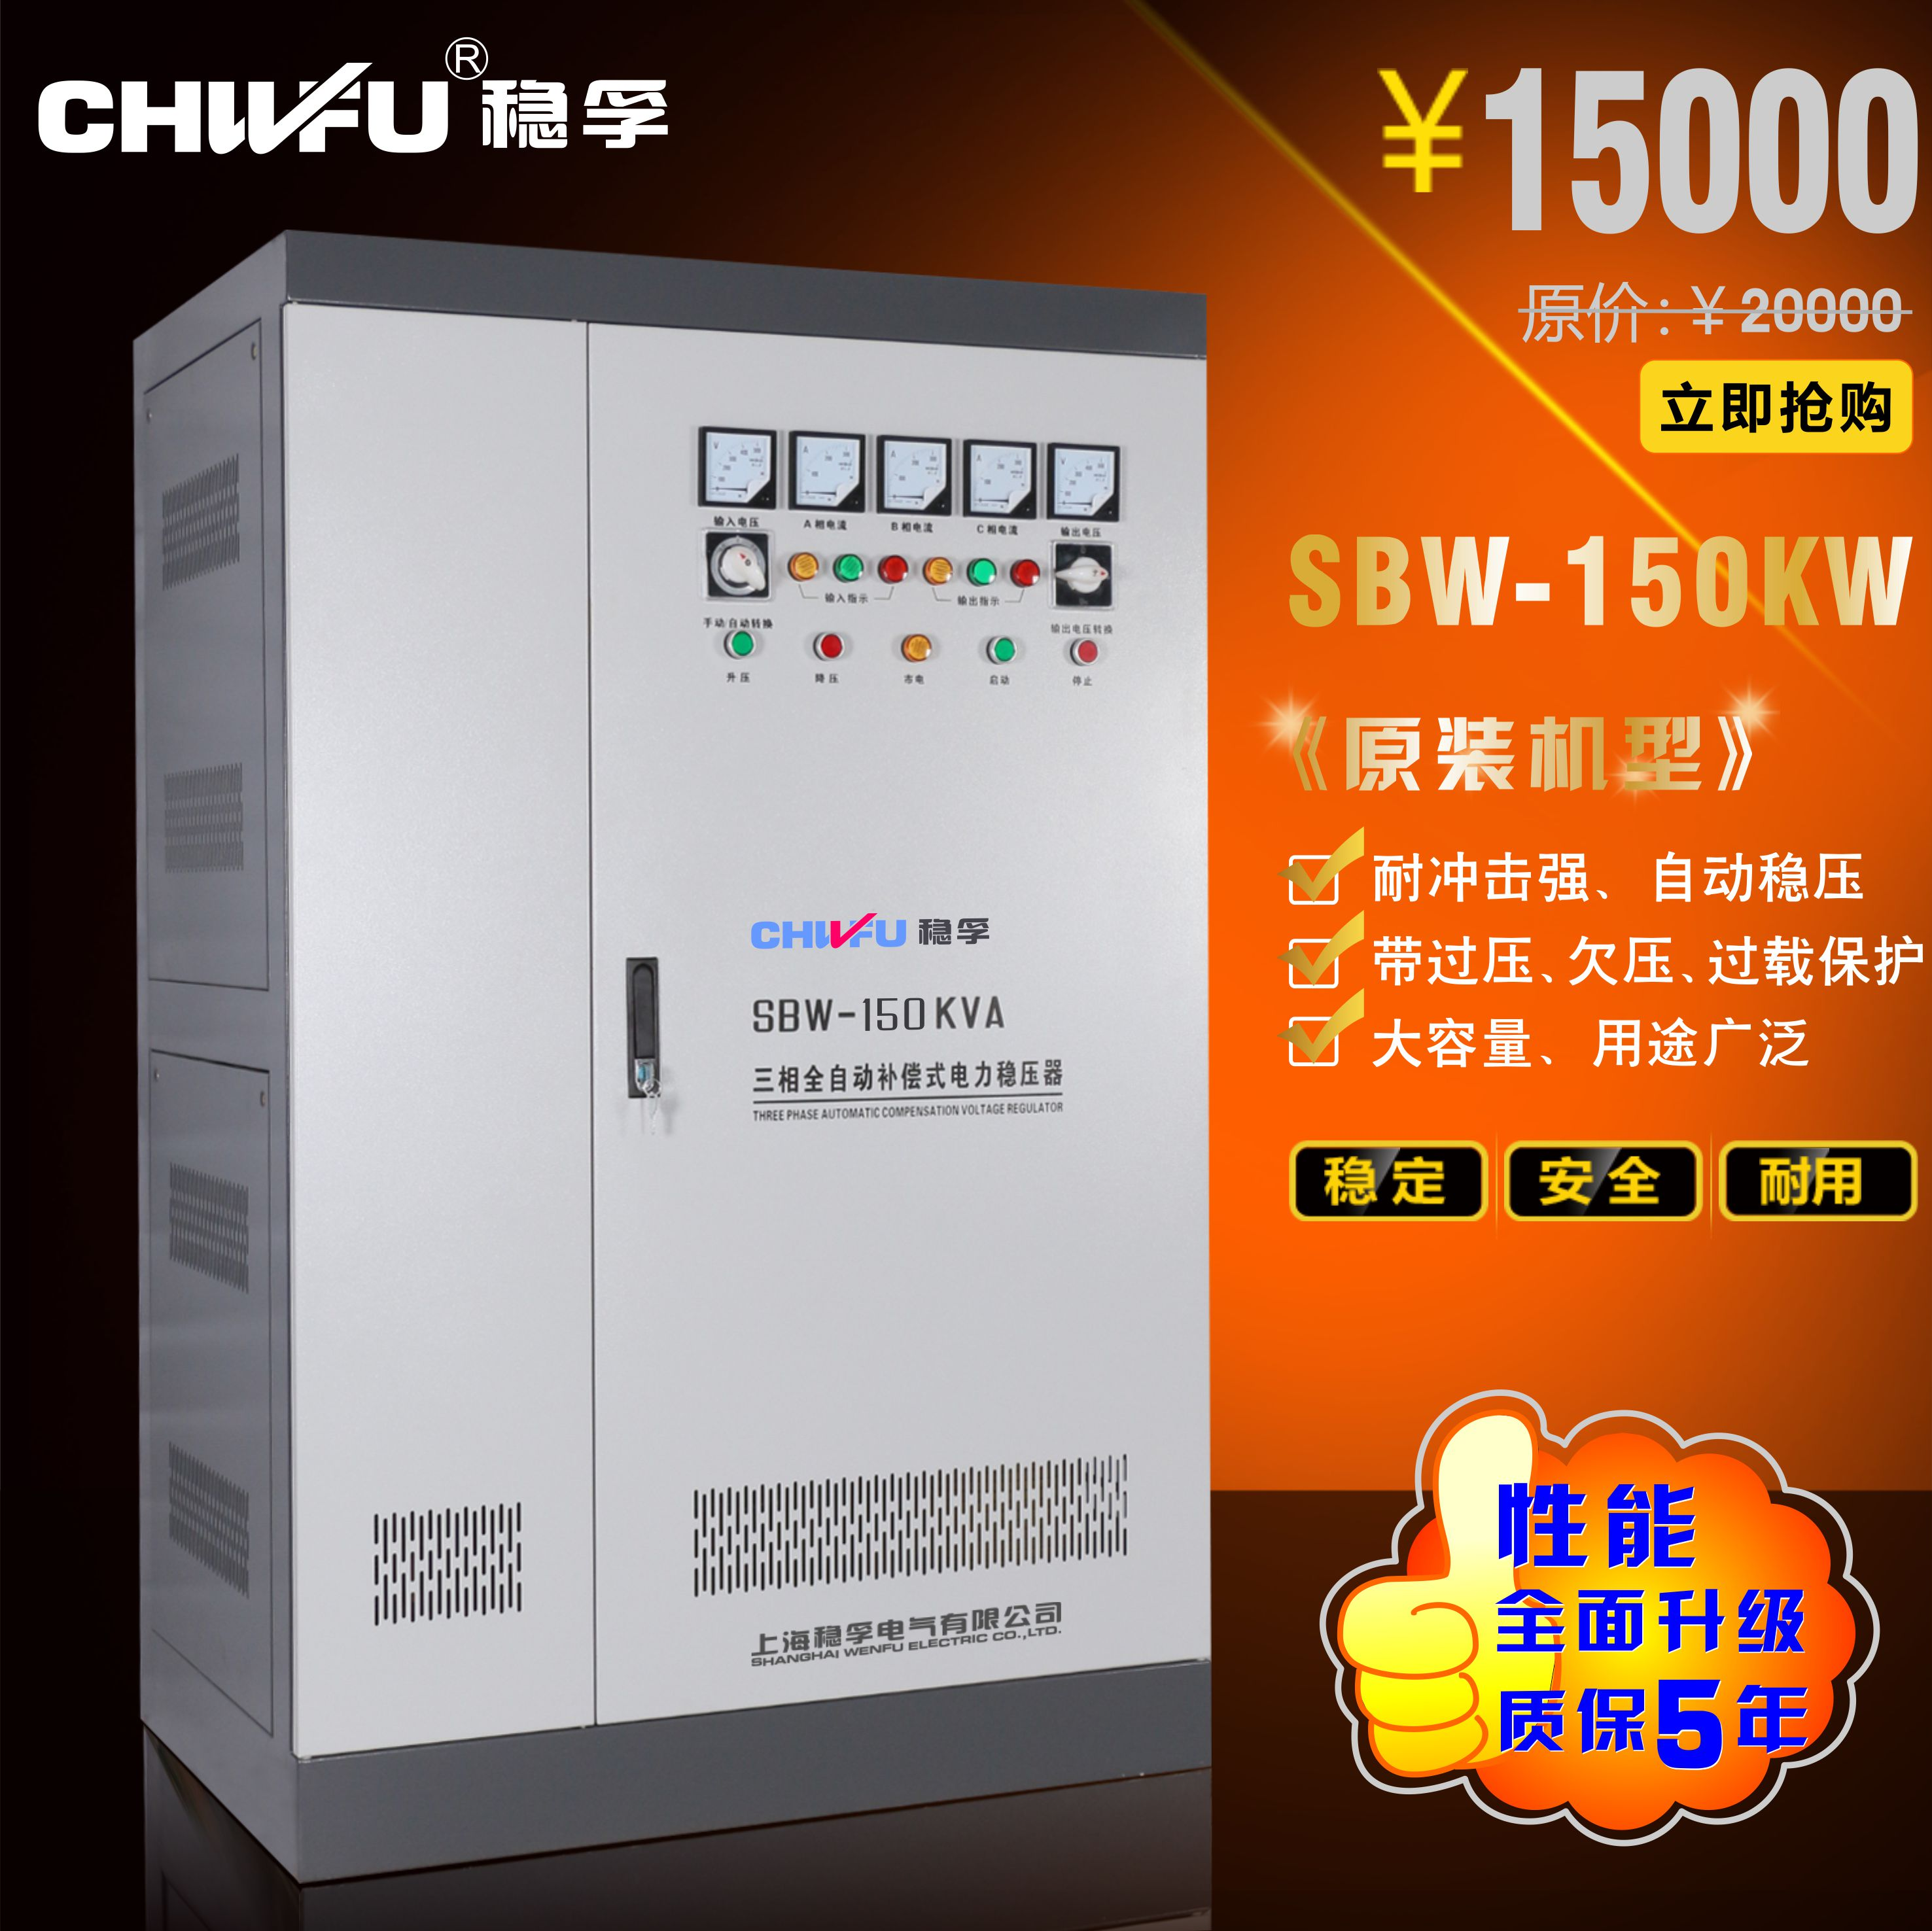 Импульсный источник питания Chwfu stable Info 380V 150KW/SBW150KW ru content about festival info html page 2